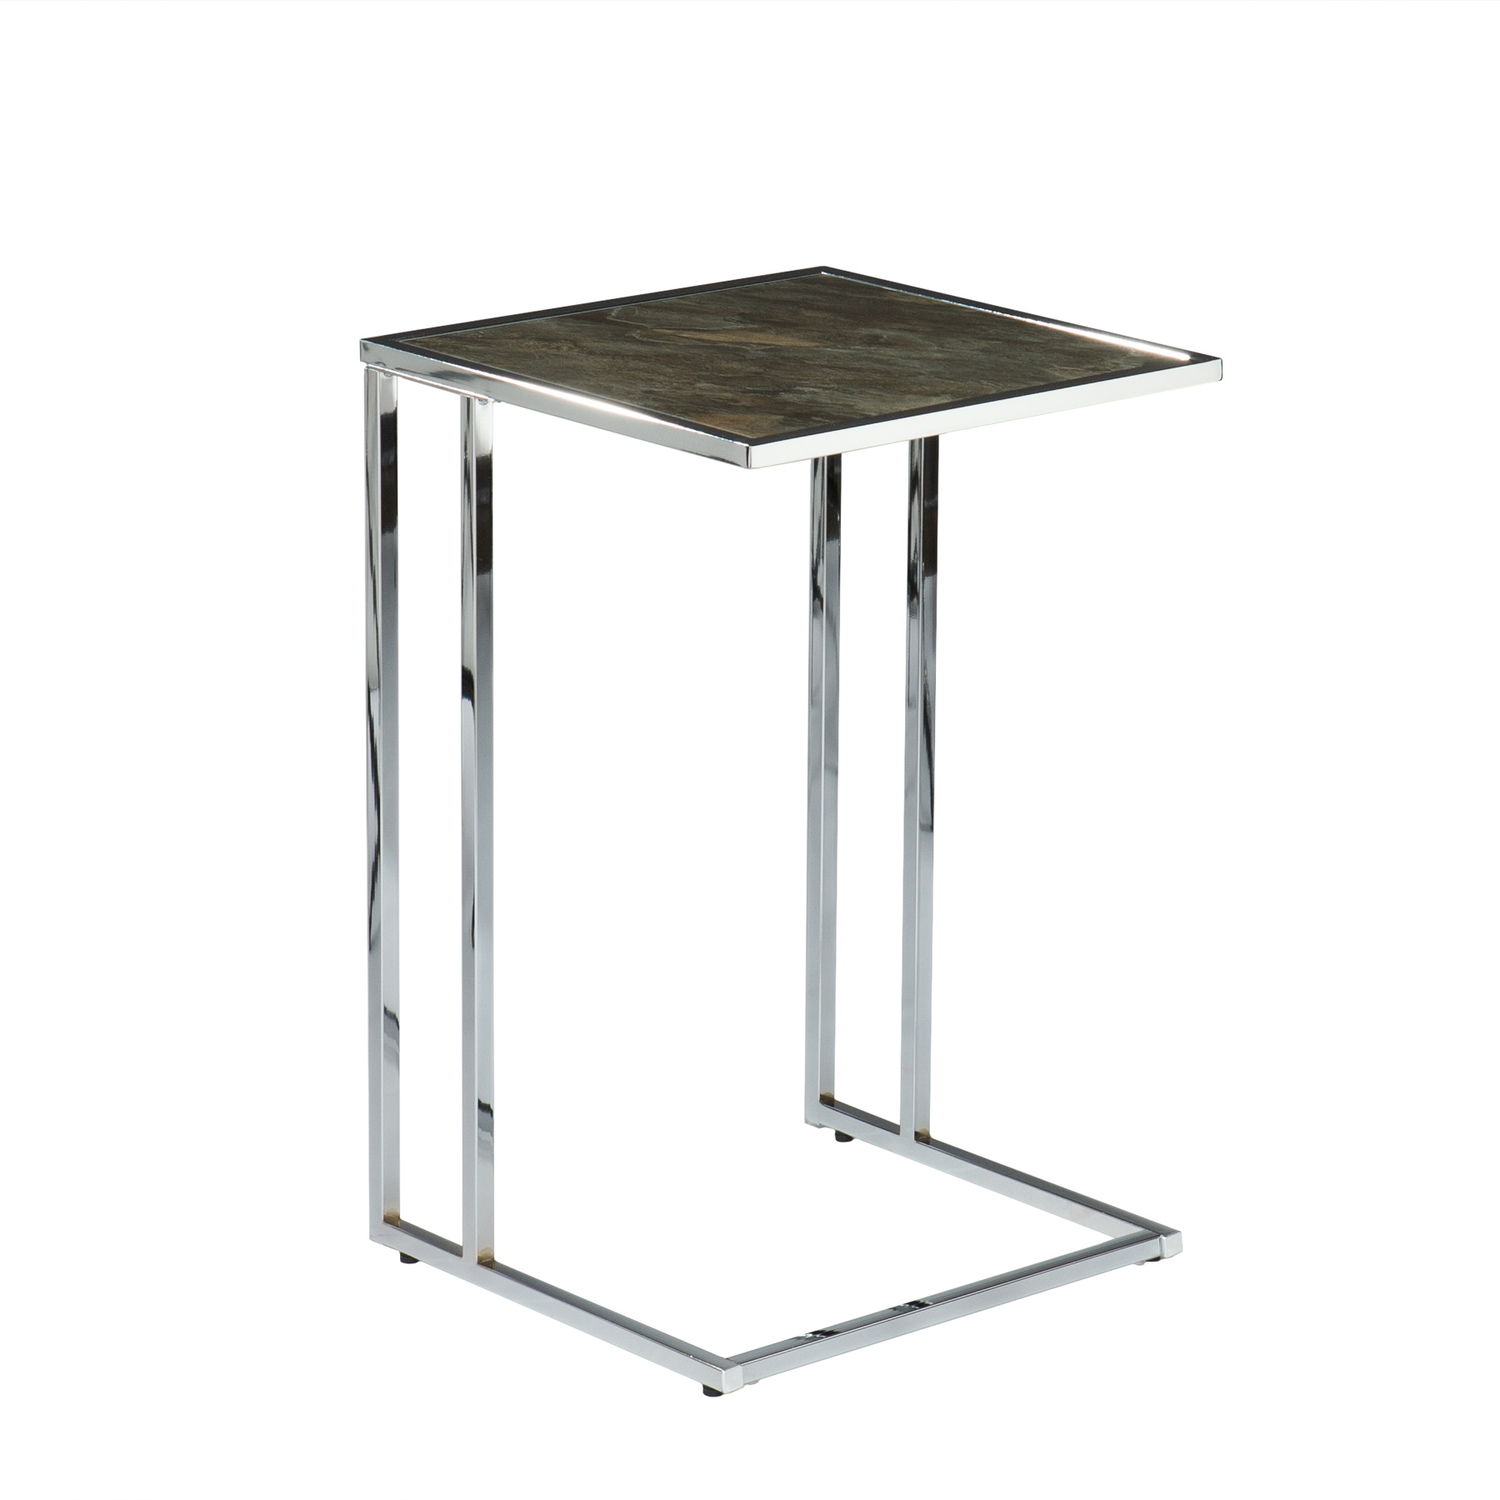 Southern enterprises sofa server accent table marble by oj for Sofa side table